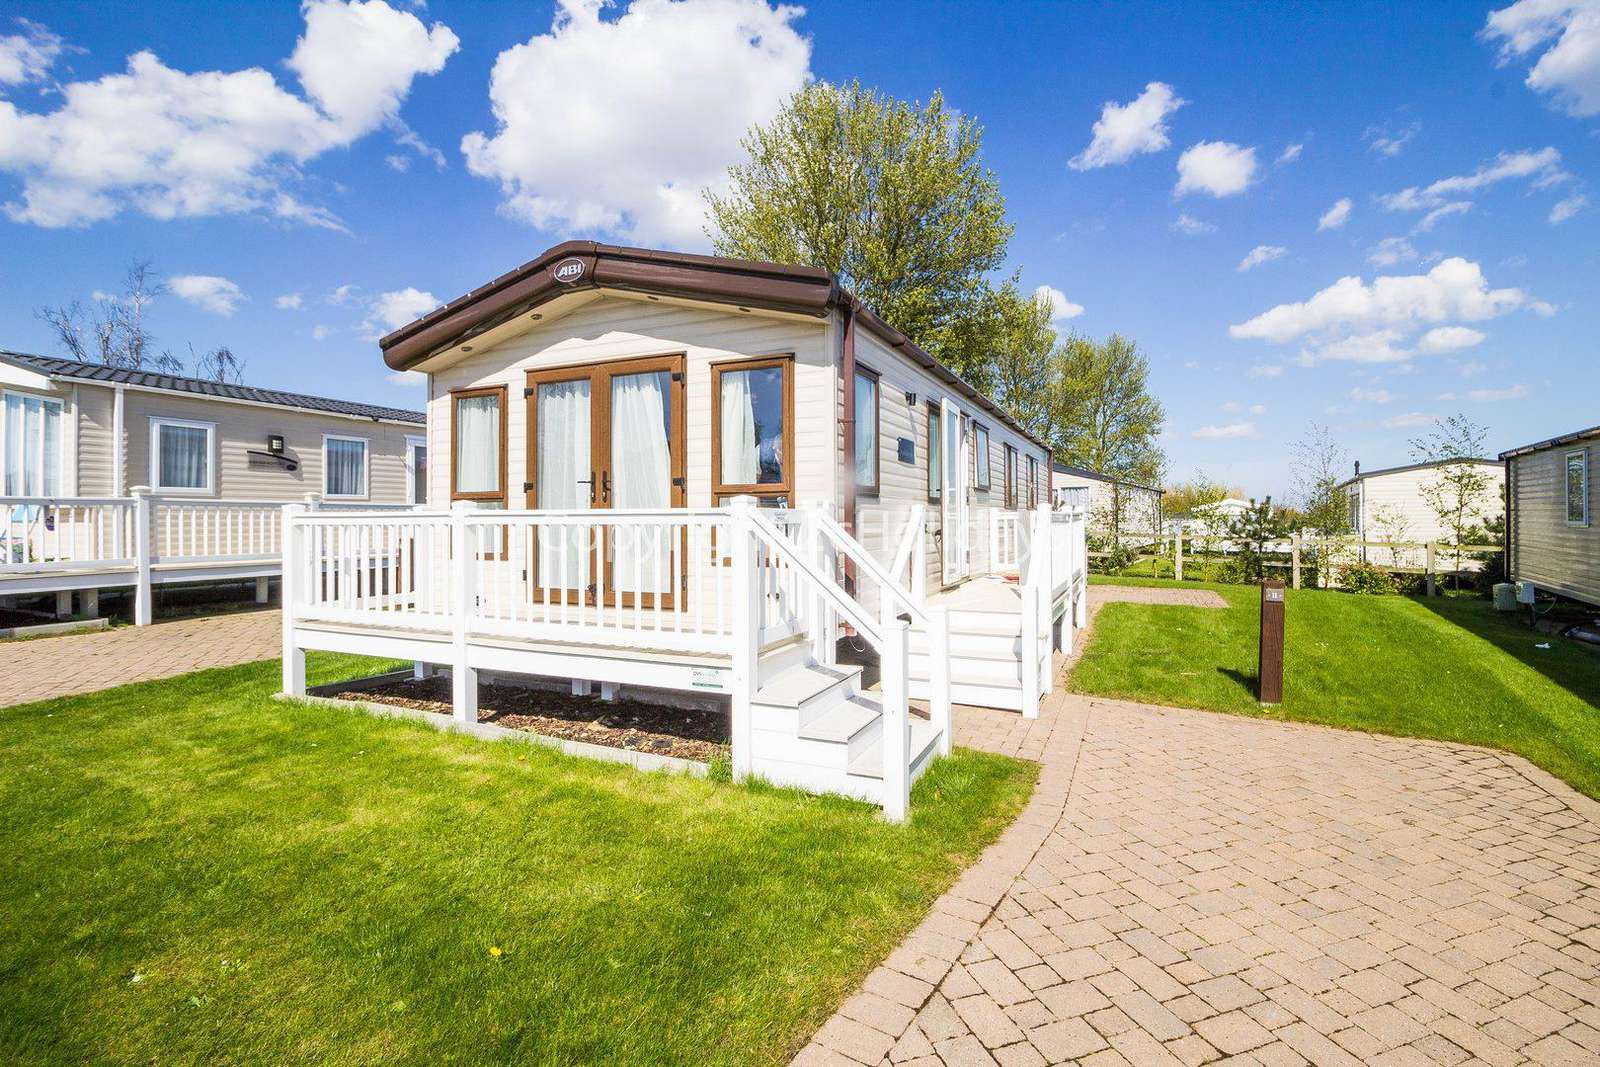 2 bedroom accommodation with decking at the Caister Haven Holiday Park - property